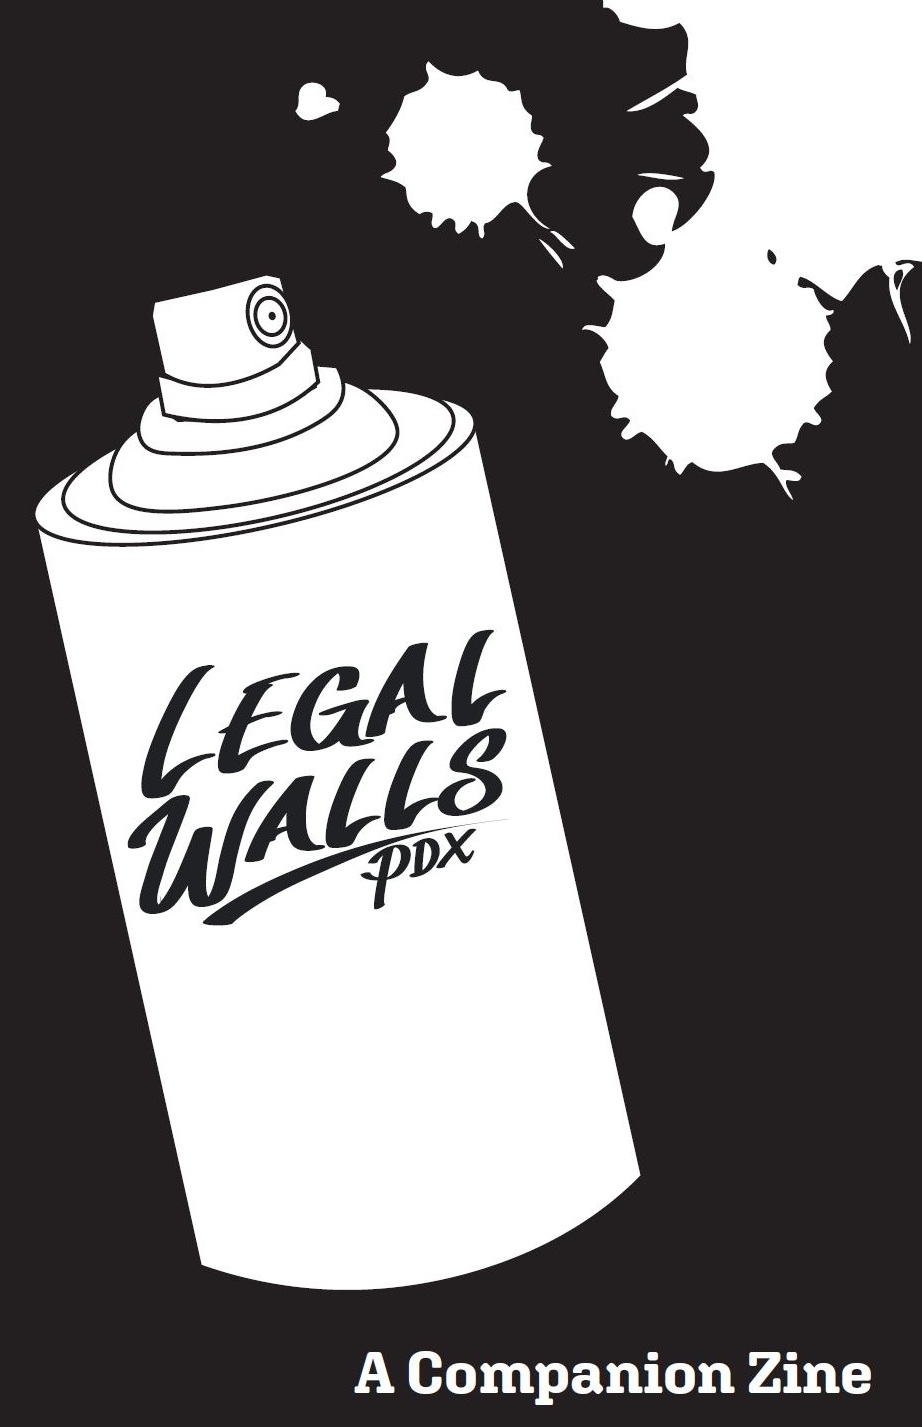 Legal Walls PDX Companion Zine | Available Soon! -